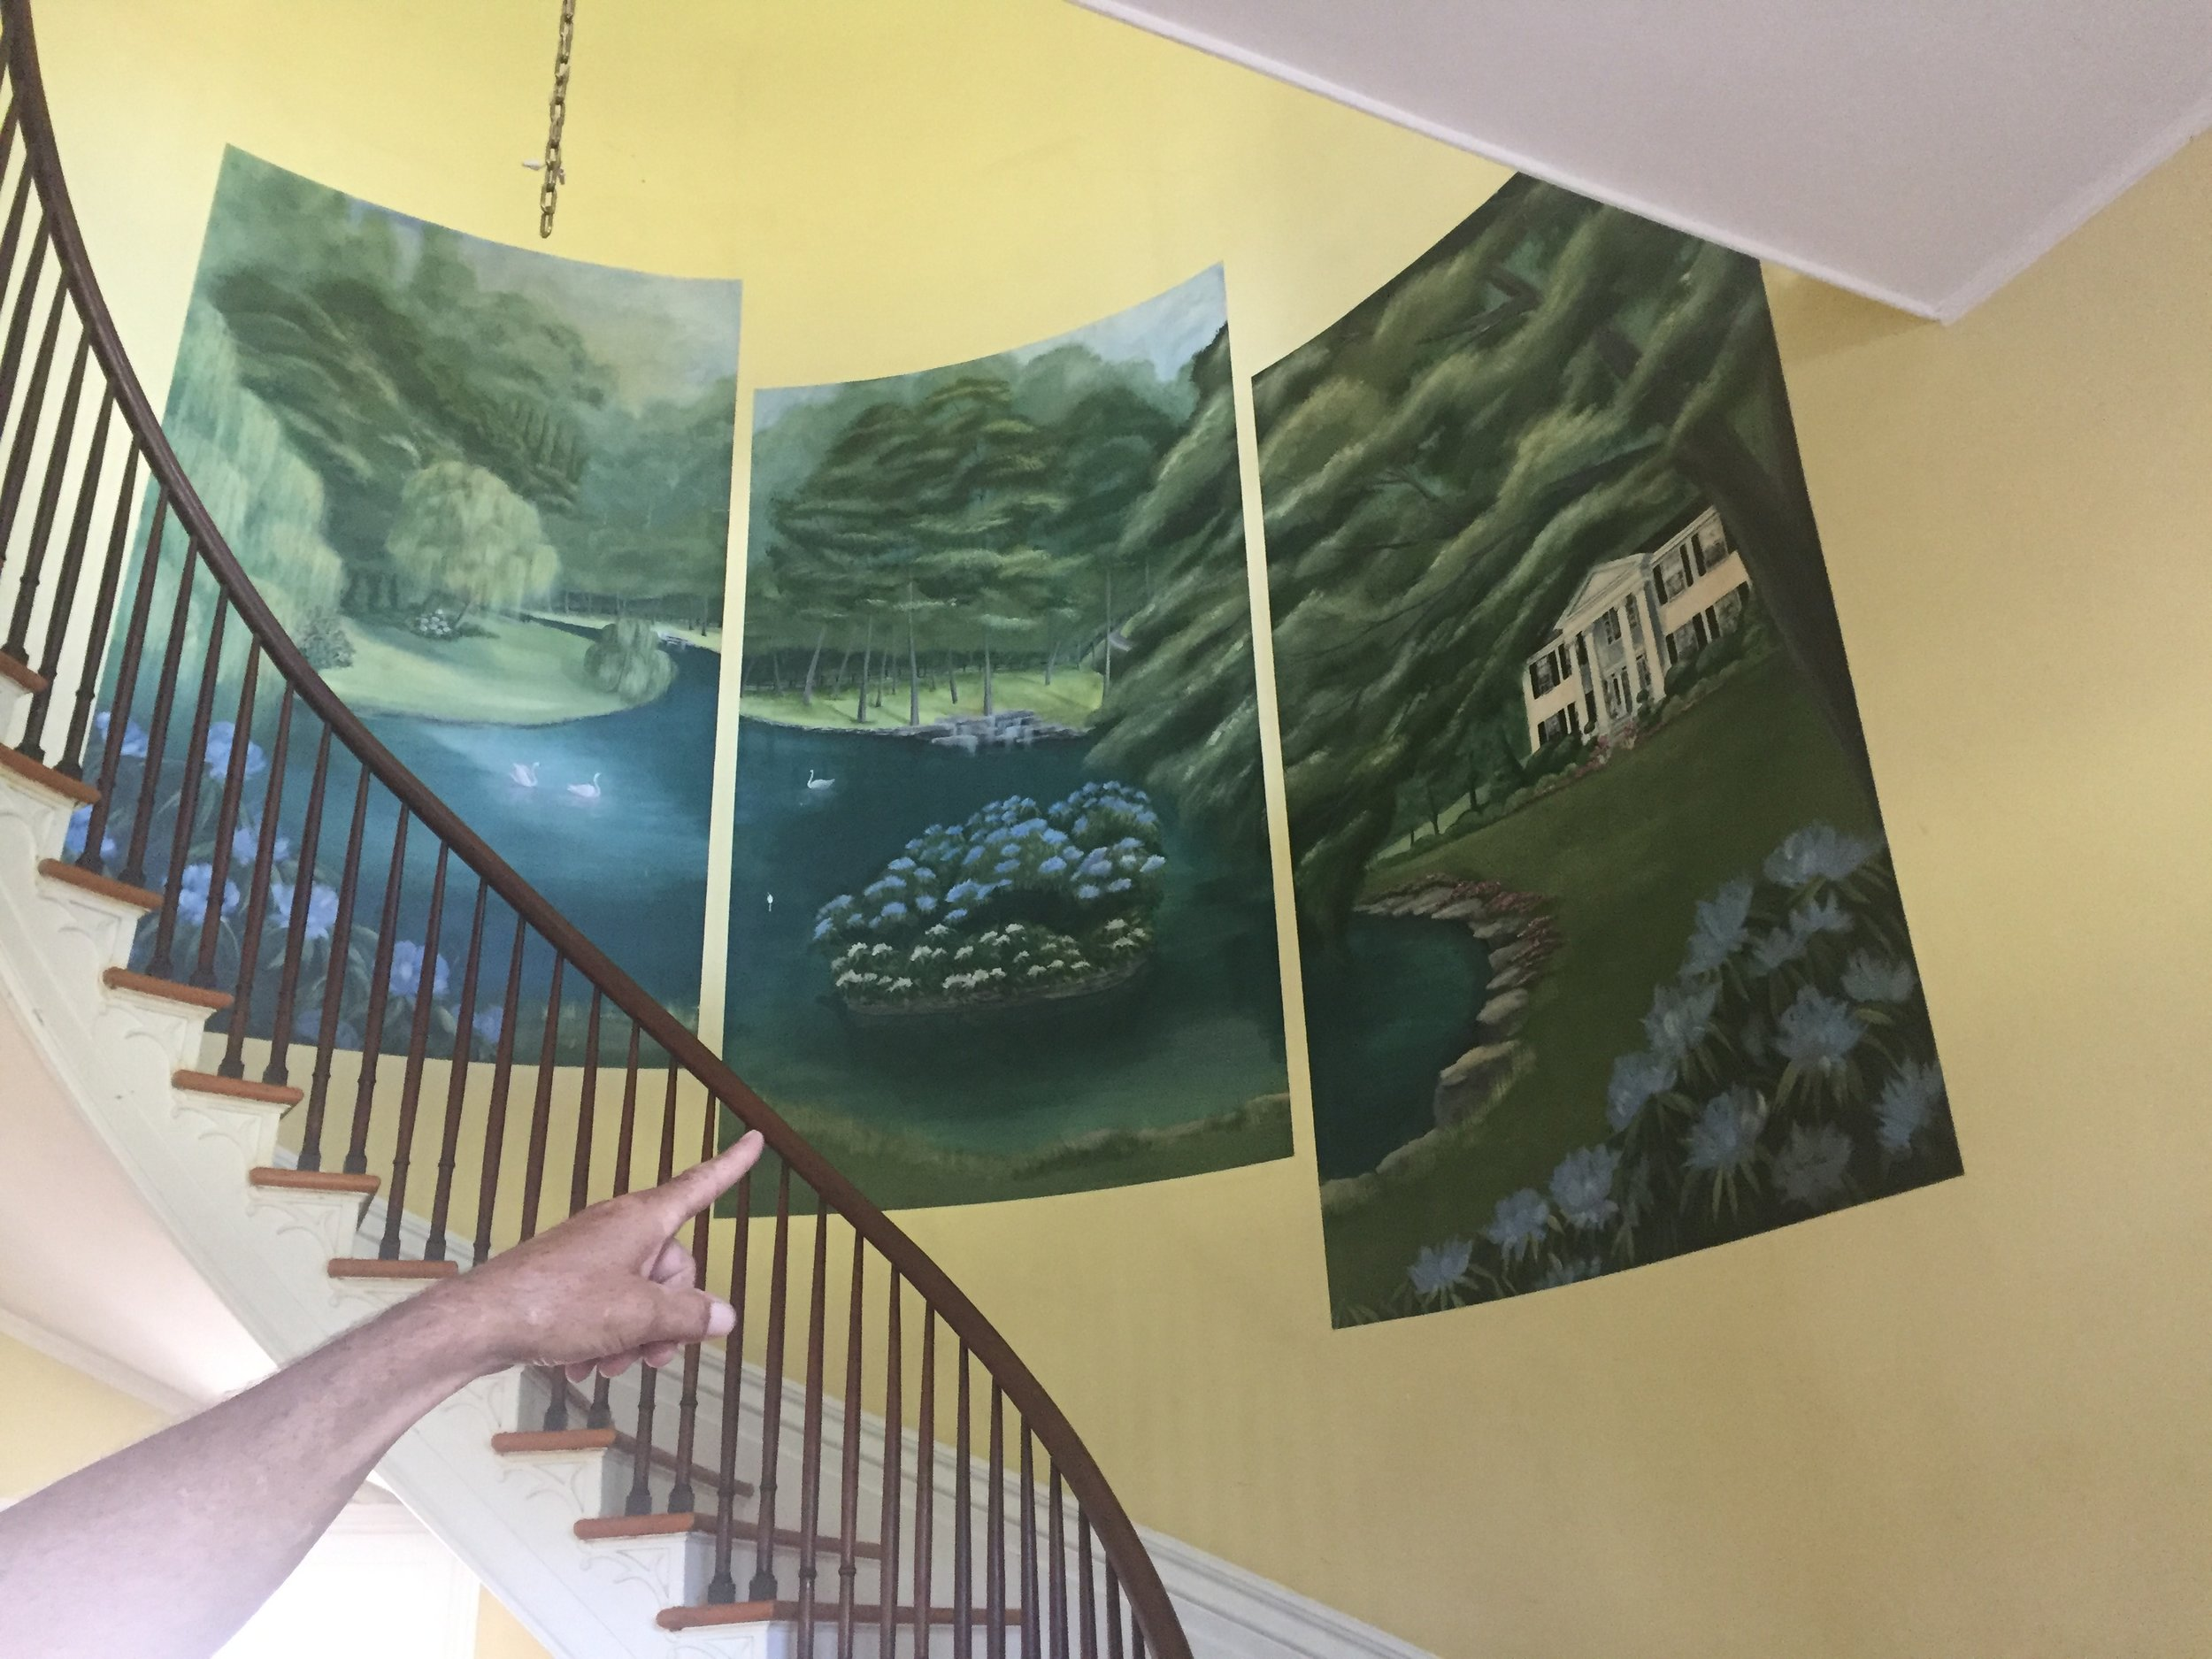 A mural of the original White Hall Farm along the wall of the spiral staircase